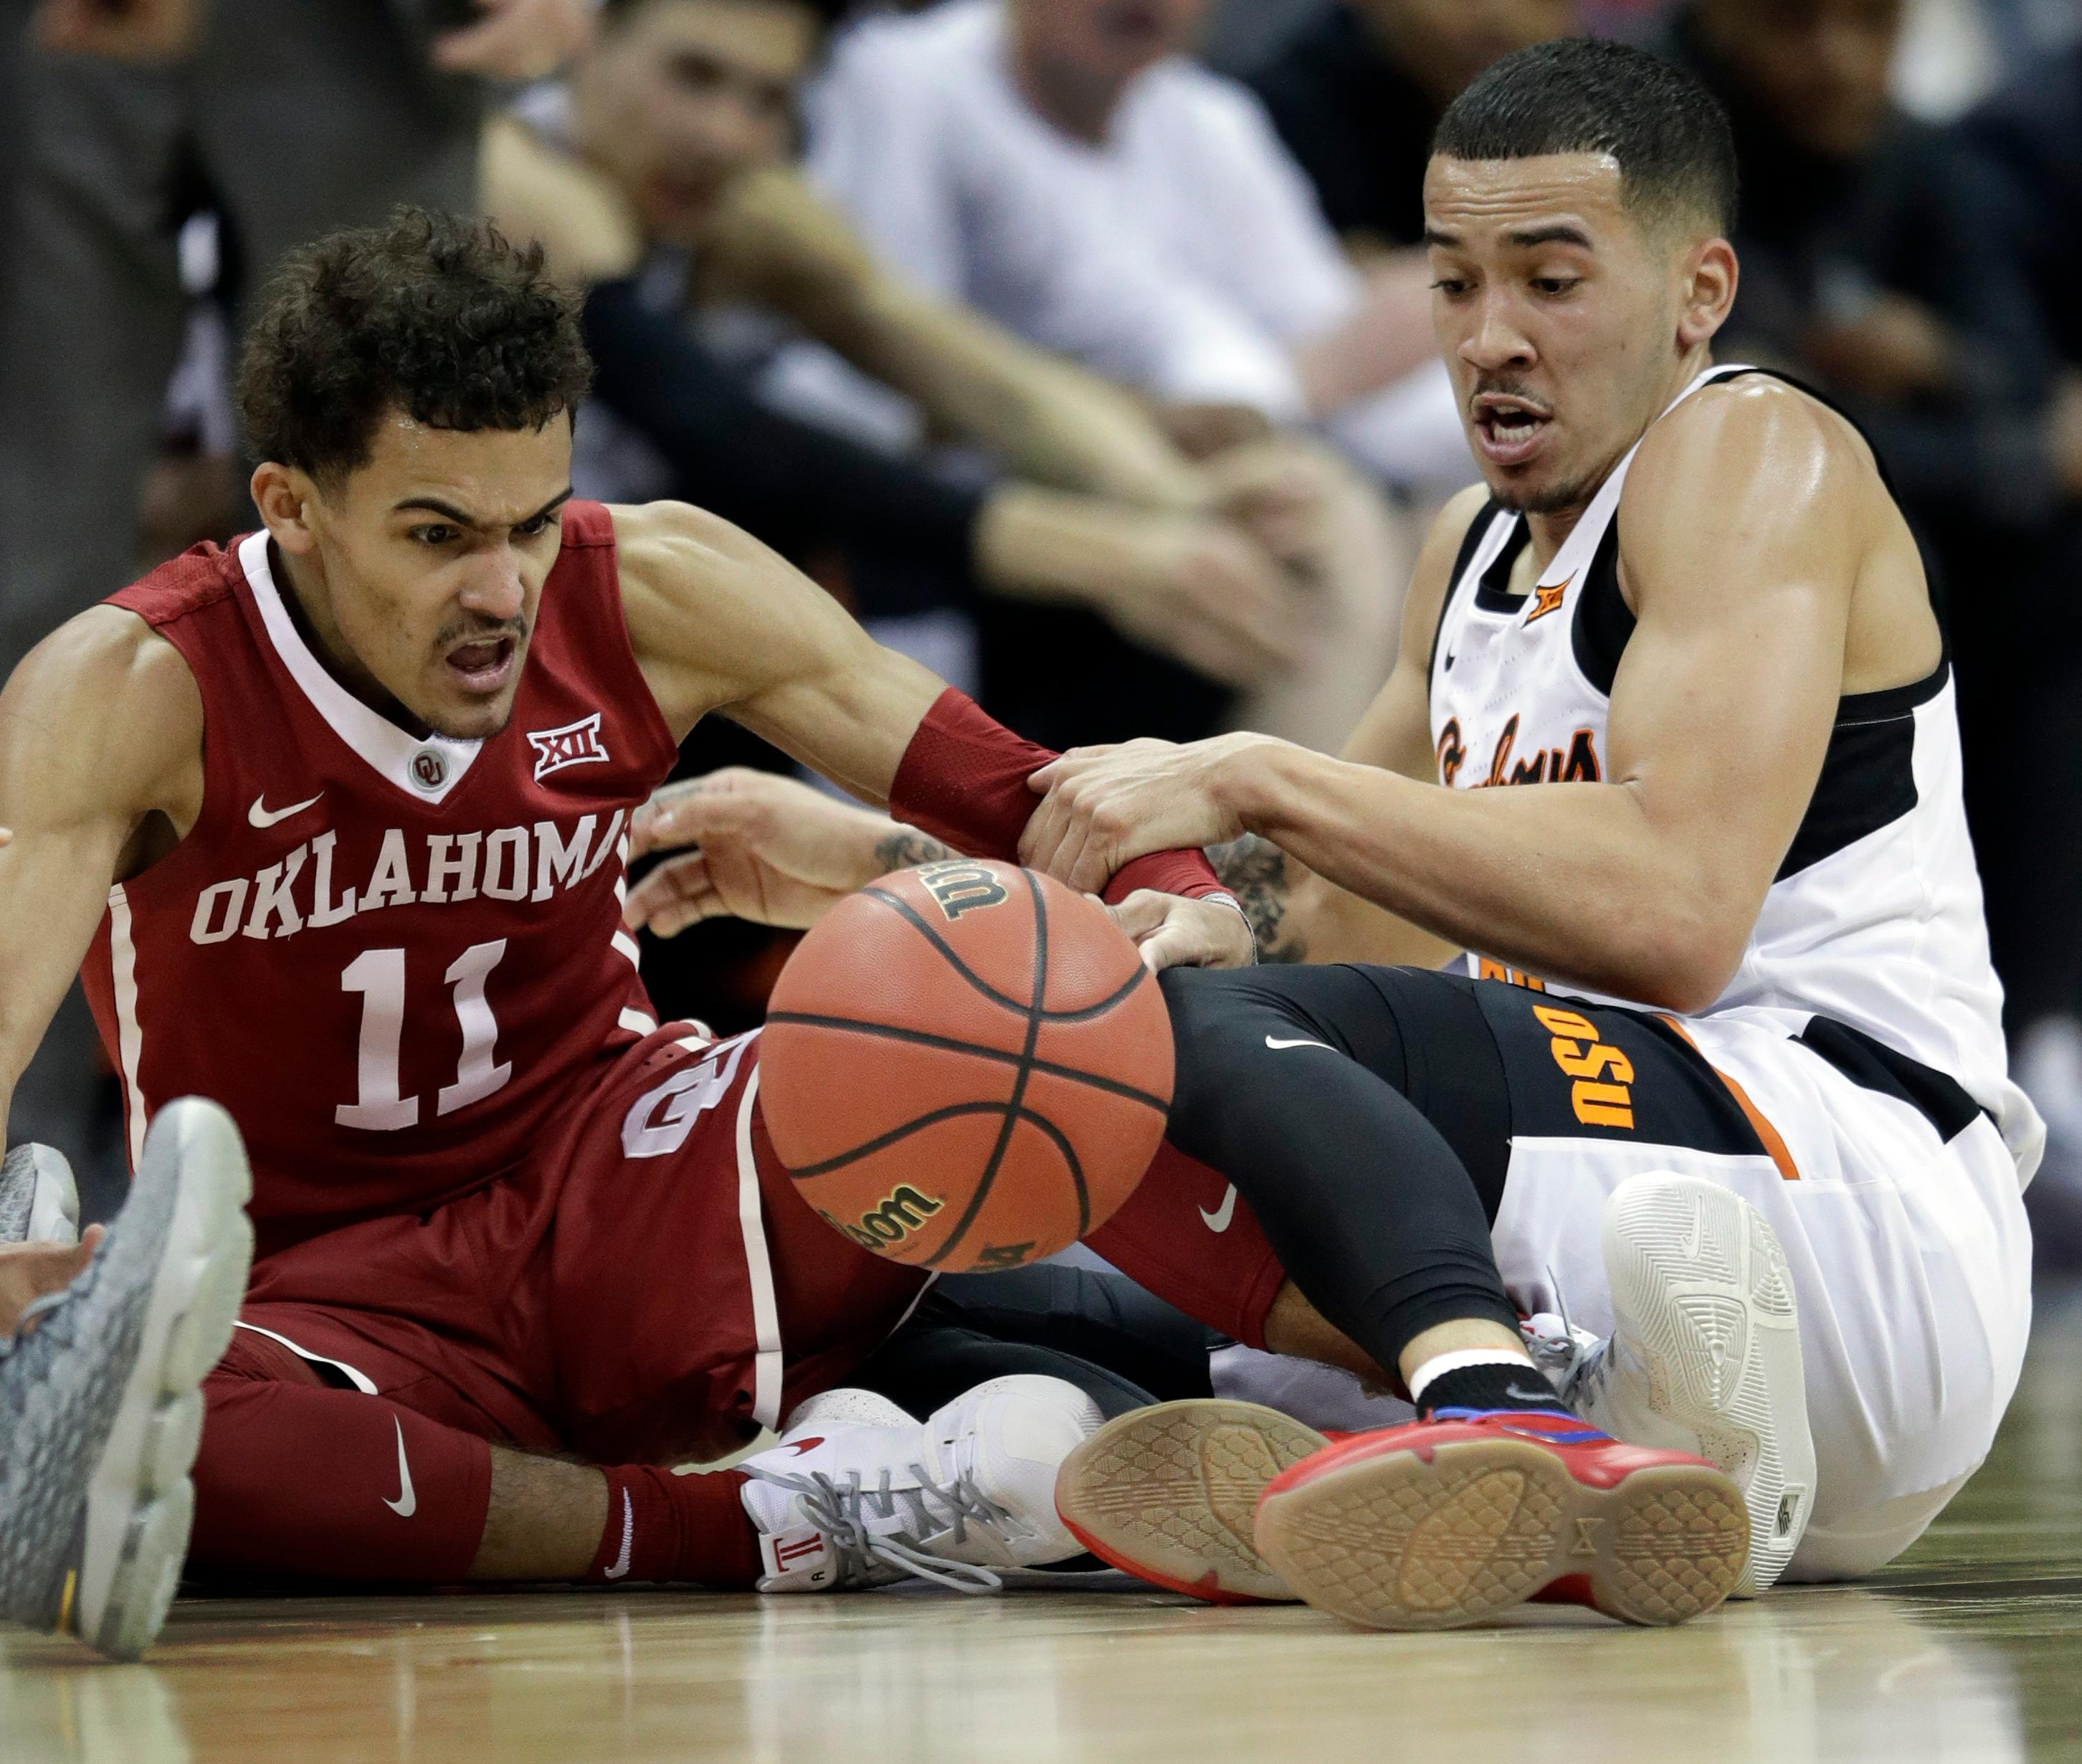 Oklahoma guard Trae Young (11) goes to the floor for a loose ball with Oklahoma State guard Jeffrey Carroll, right, during the first half of an NCAA college basketball game in first round of the Big 12 men's tournament in Kansas City, Mo., Wednesday, March 7, 2018. (AP Photo/Orlin Wagner)